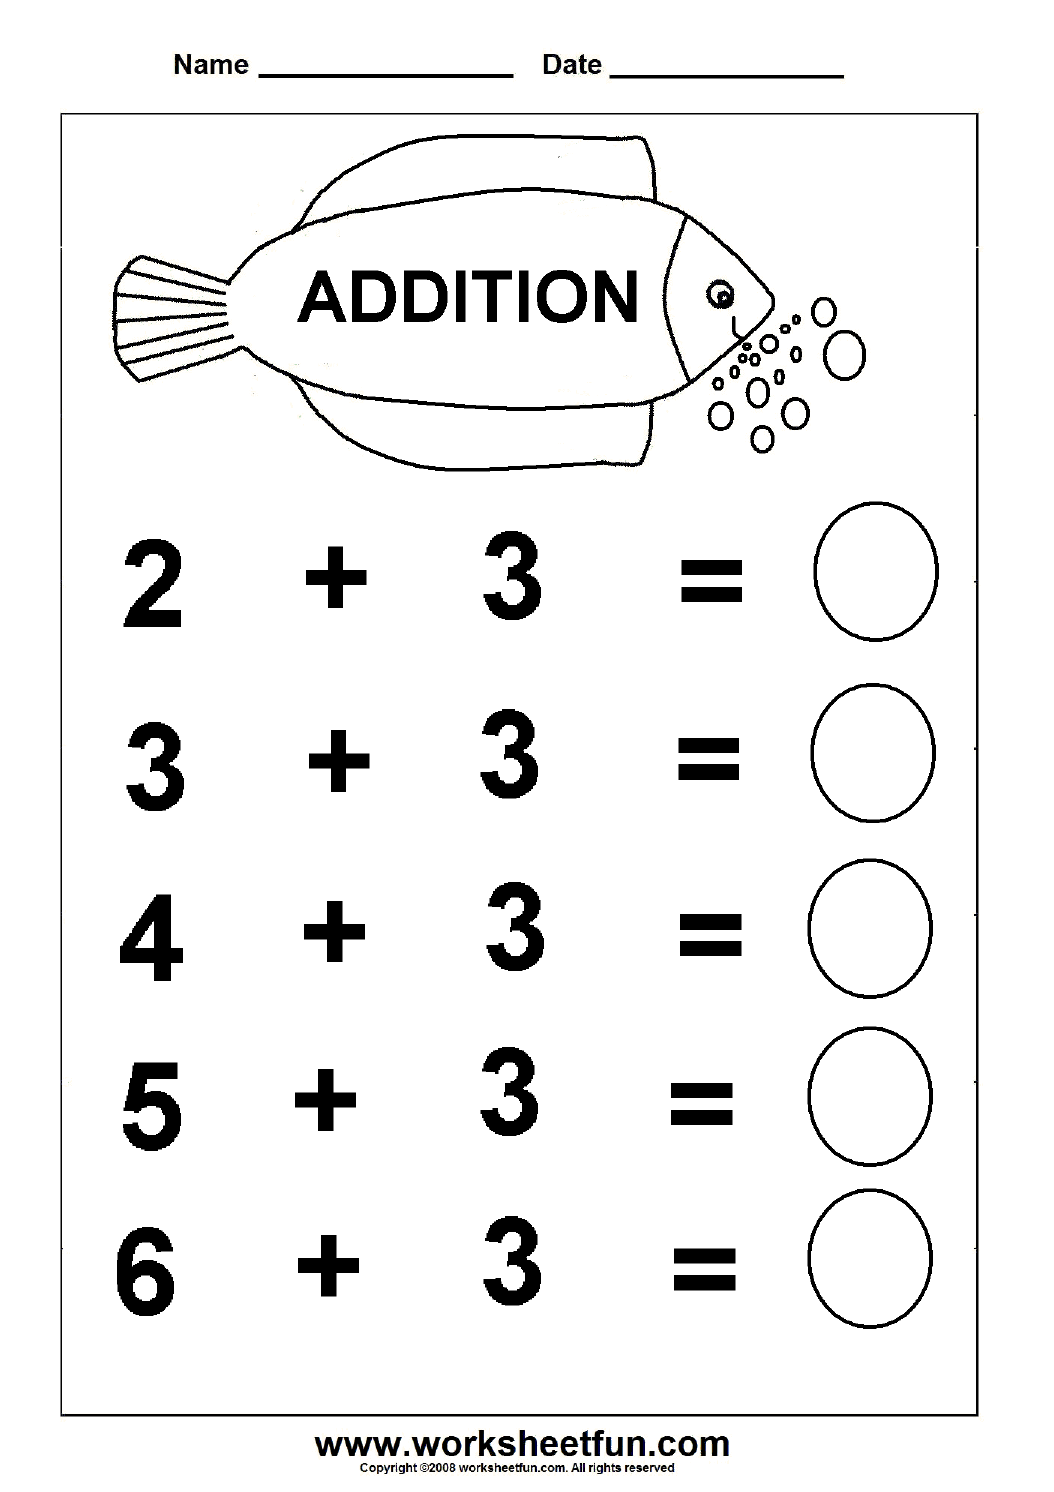 Worksheet Addition Sheets For Kindergarten beginner addition 6 kindergarten worksheets free first grade worksheets